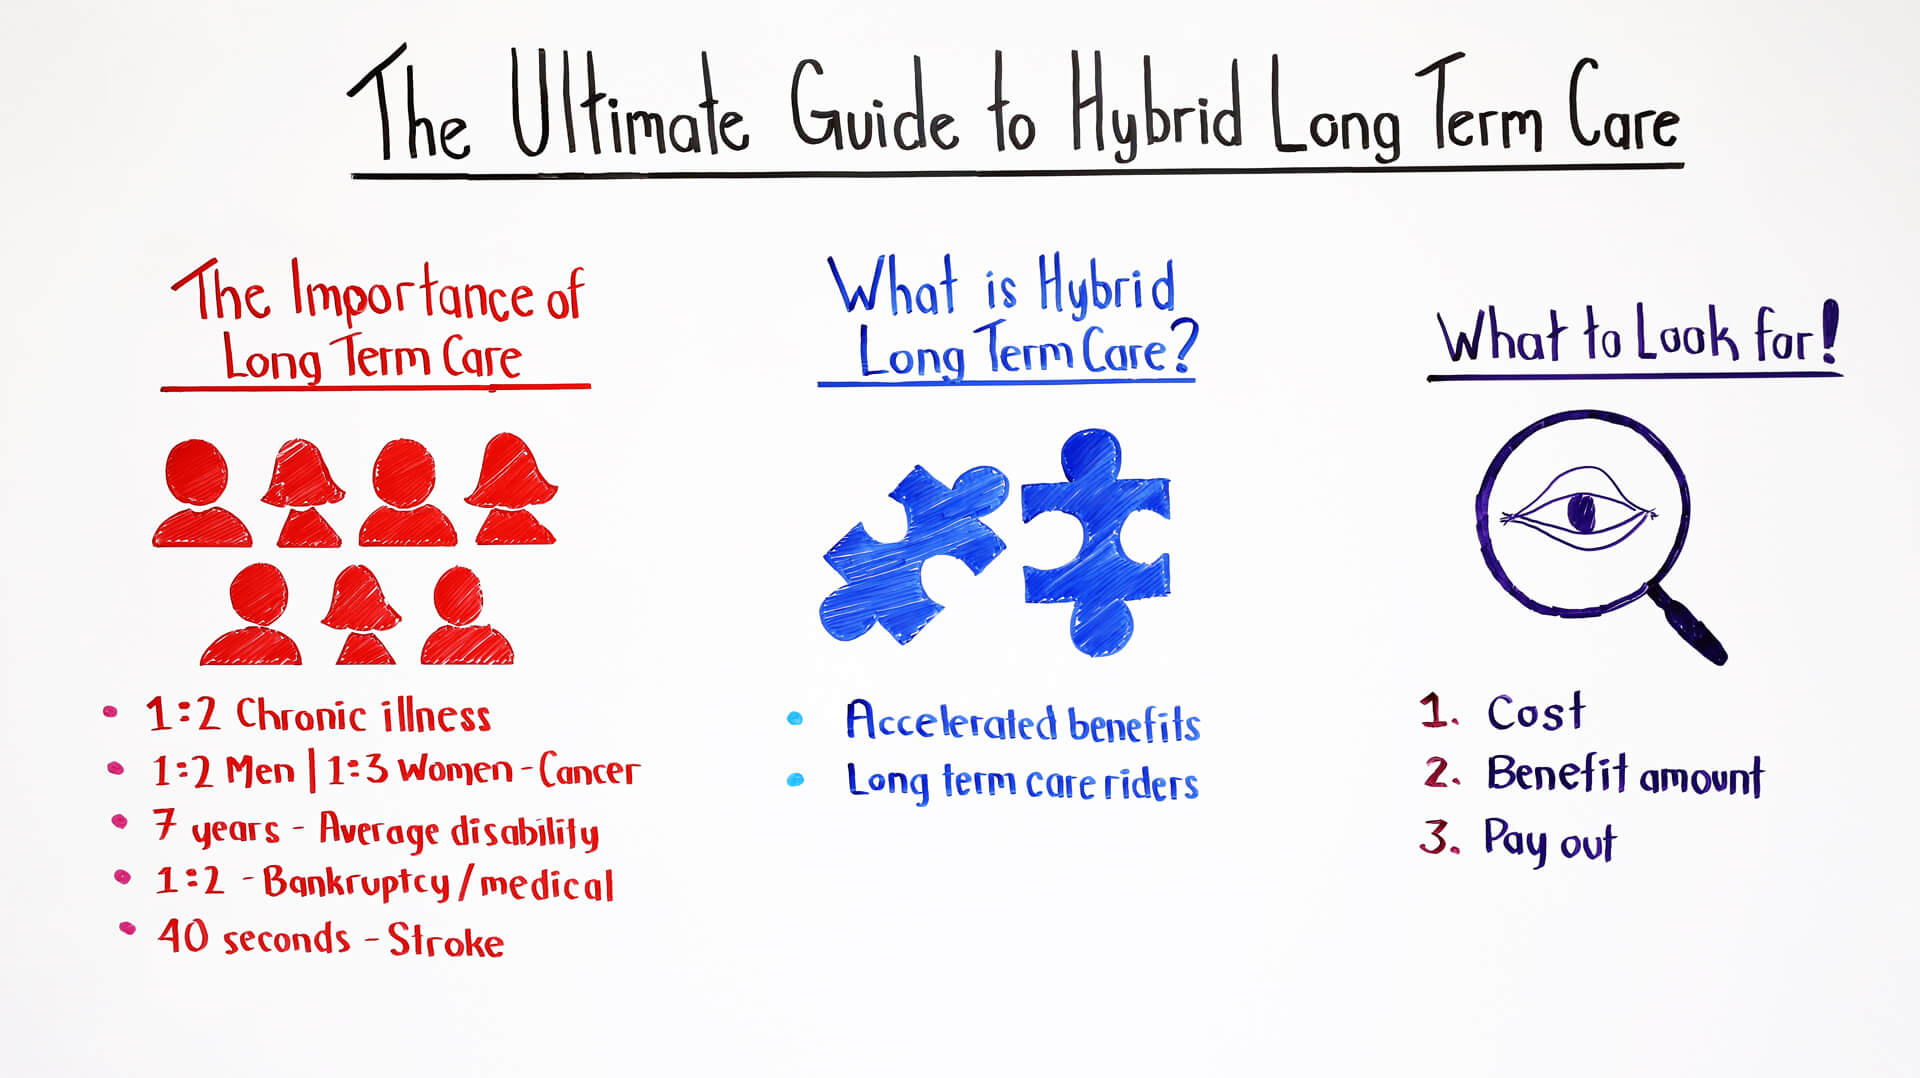 the ultimate guide to hybrid long term care